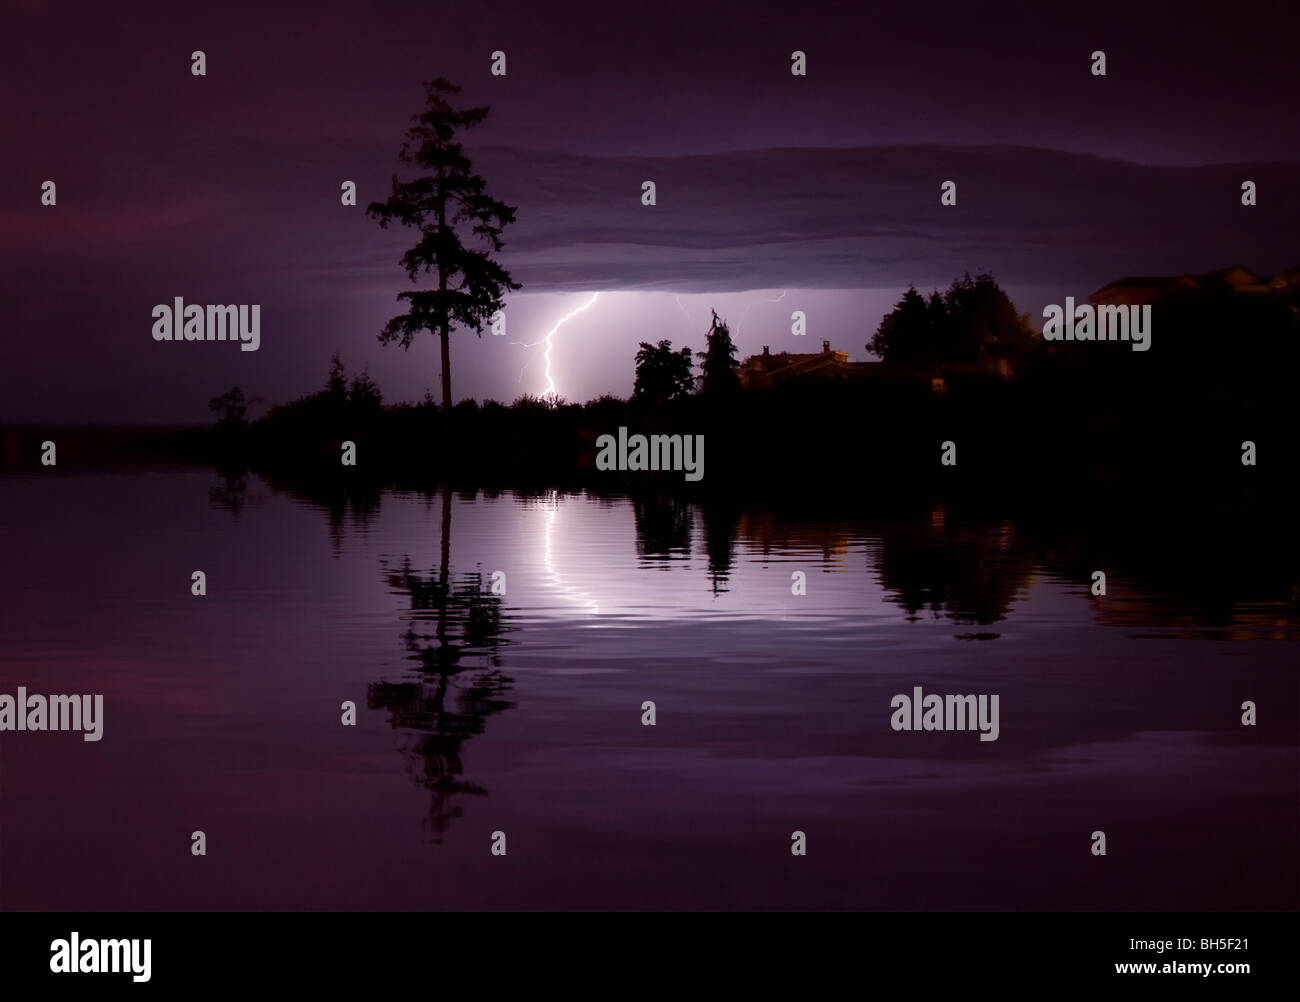 Lightning storm scene shortly after sunset creating purple hue with silhouetted fir tree reflecting in water and Stock Photo